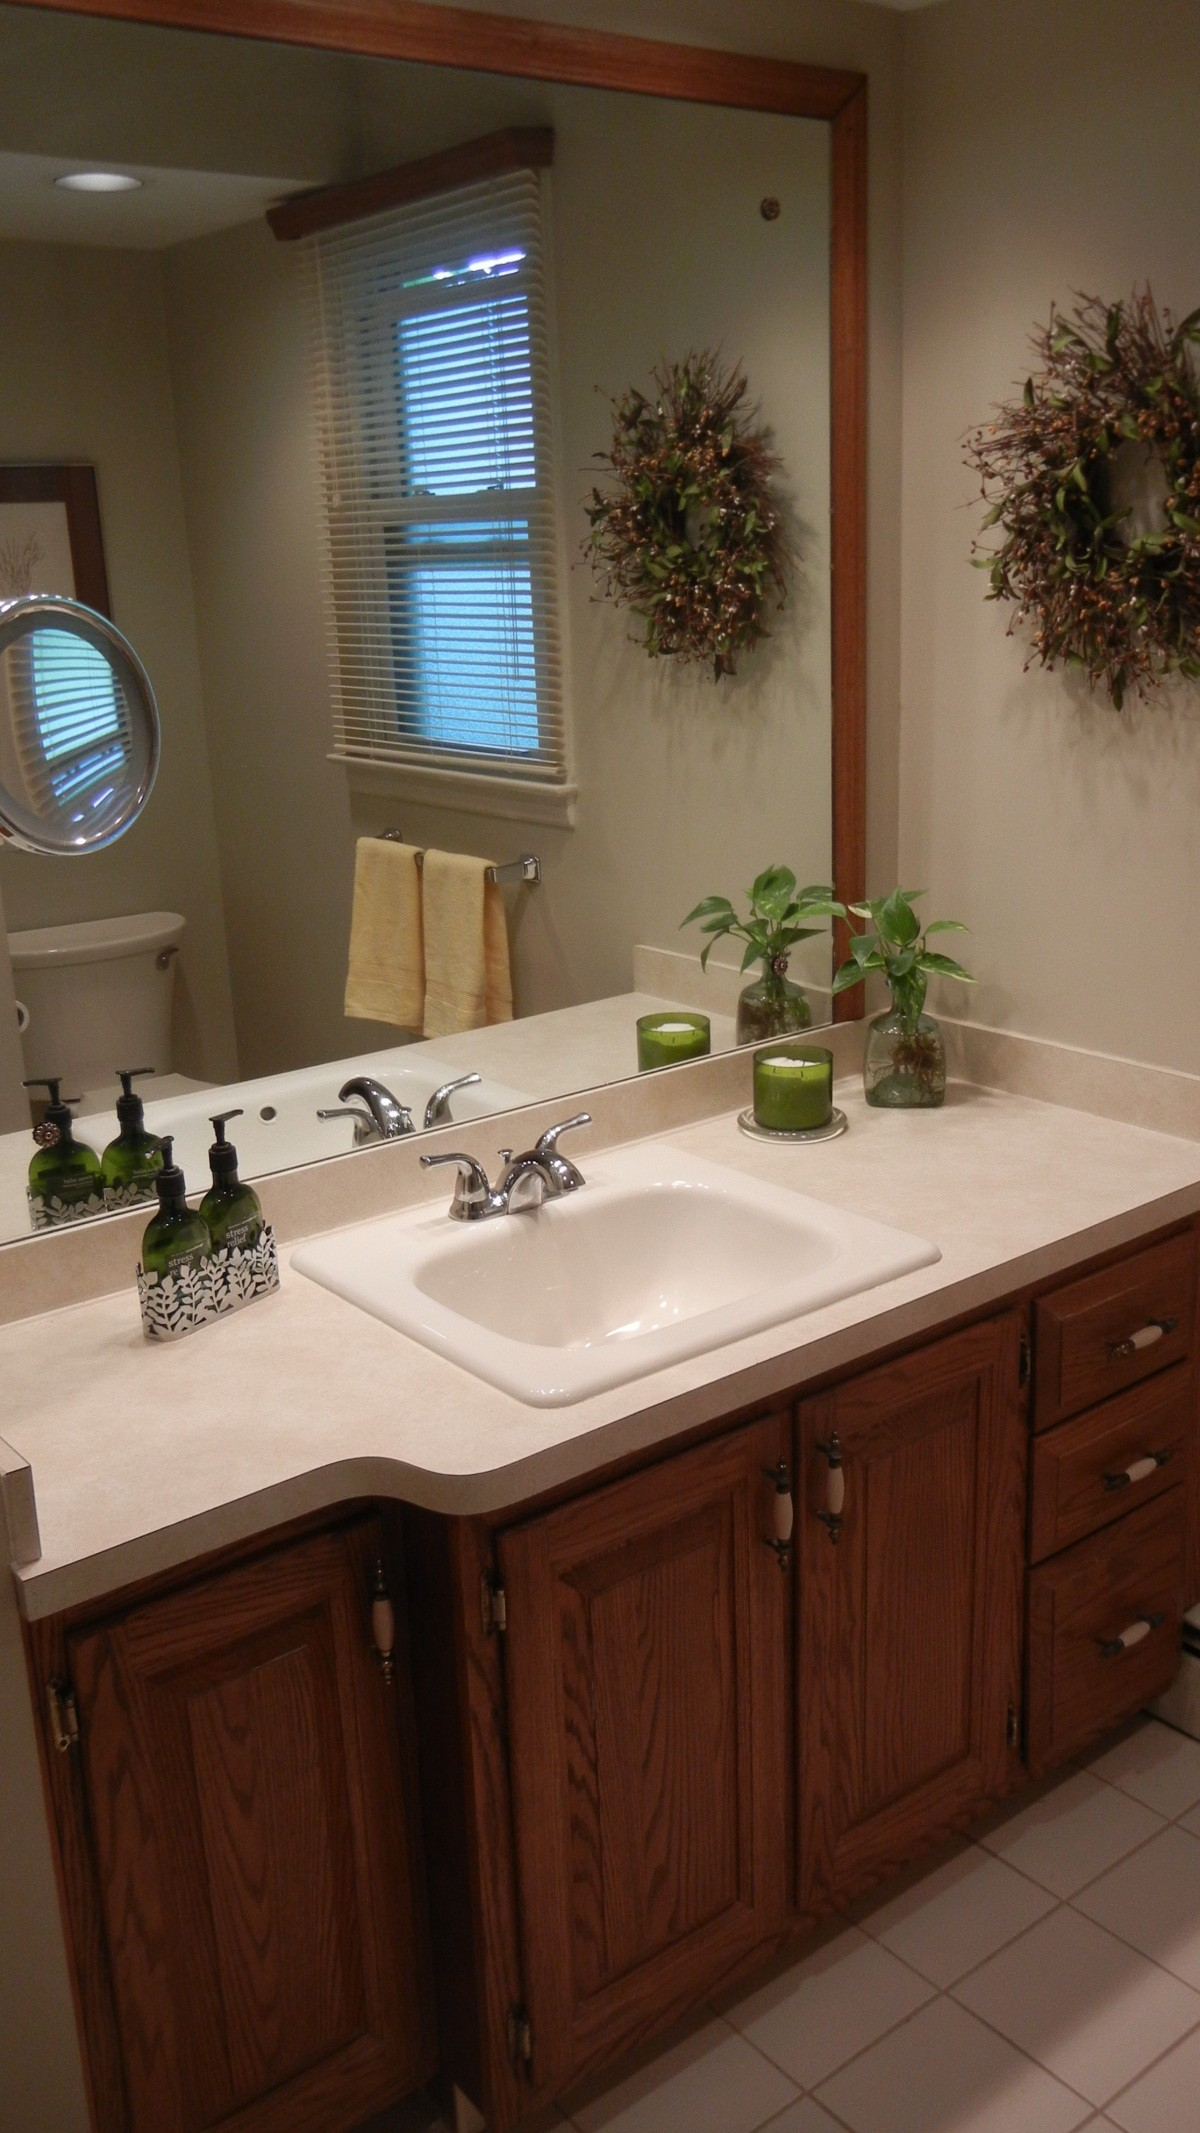 Bathroom Paint Color To Coordinate With Beige Tile Thriftyfun,Christmas Gifts Ideas For Friends